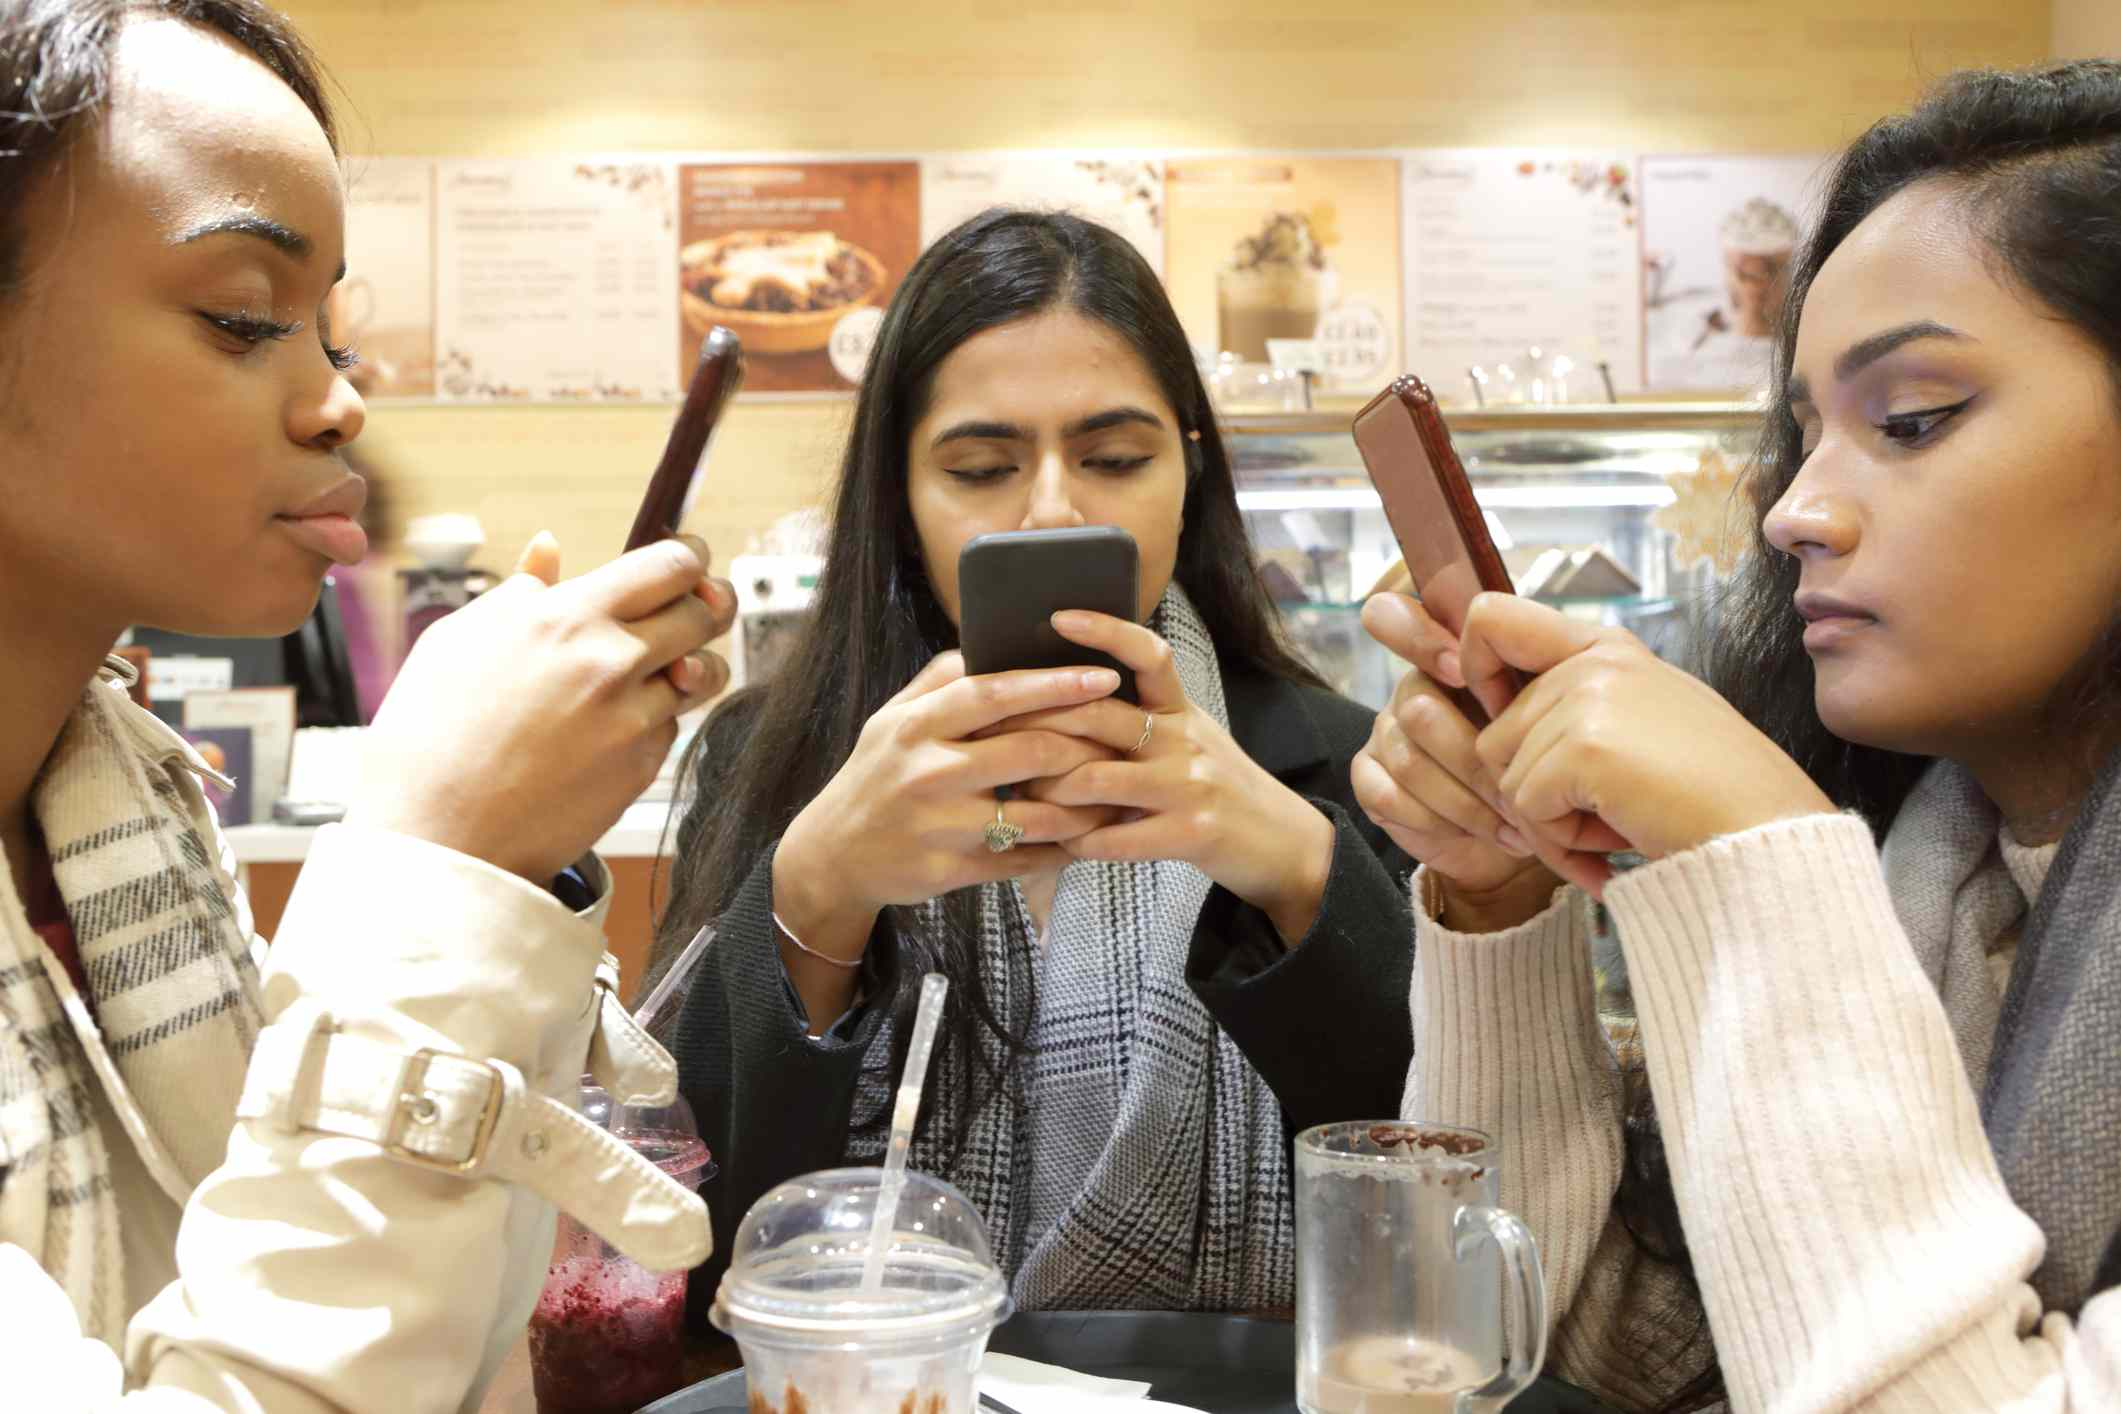 Three woman on phones in cafe